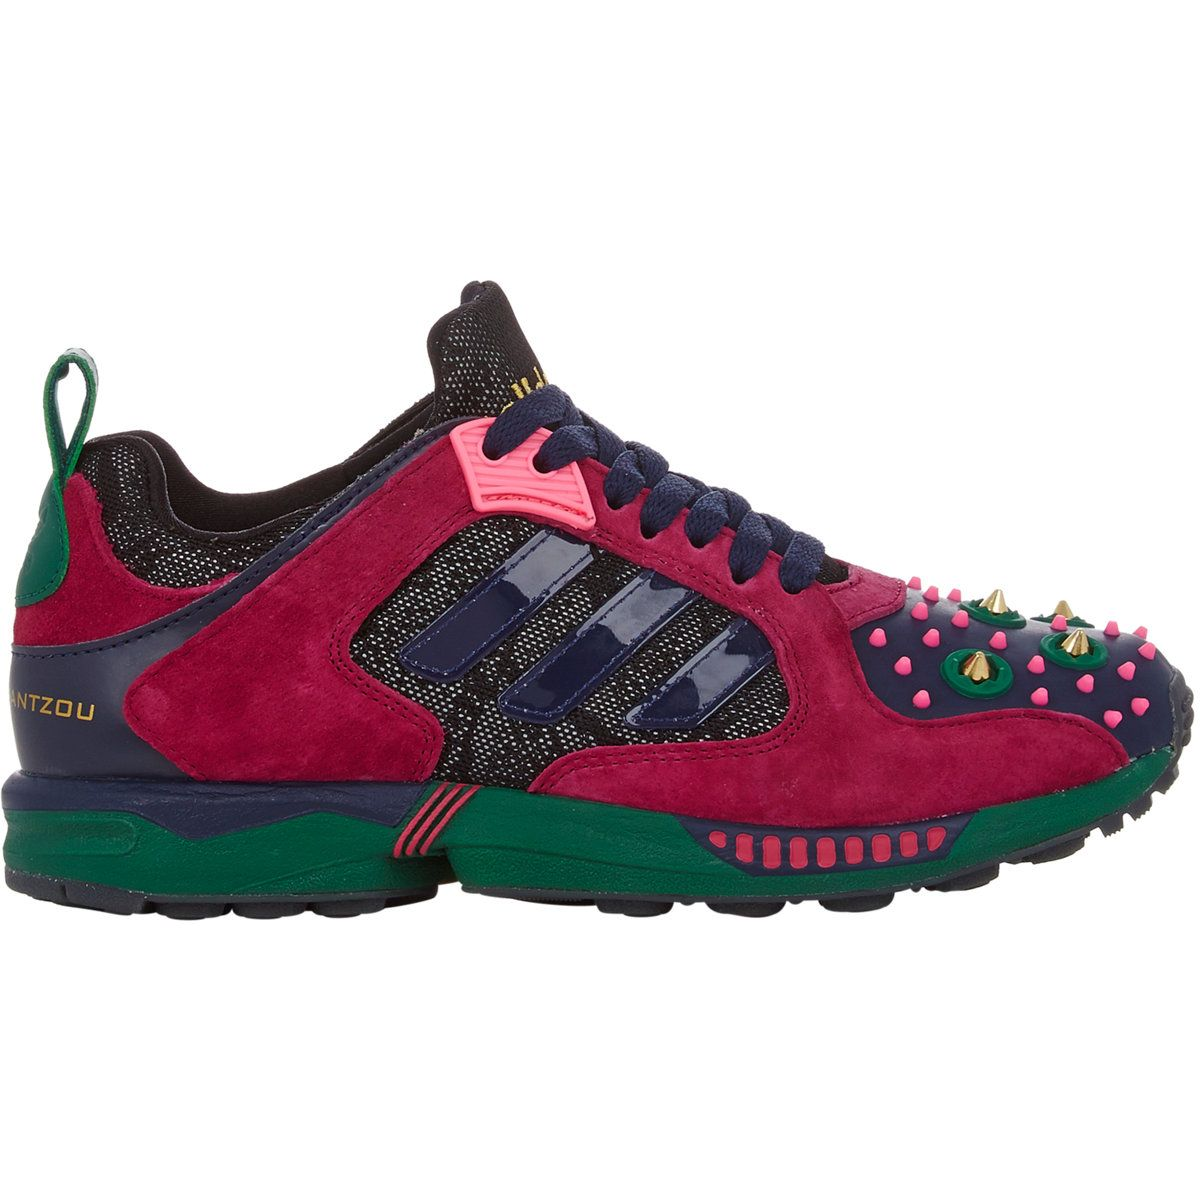 best loved 0d0b9 bd573 ... coupon code for mary katrantzou adidas x decathlon zx 5000 sneakers  pink shopstyle trainers f0925 d7d35